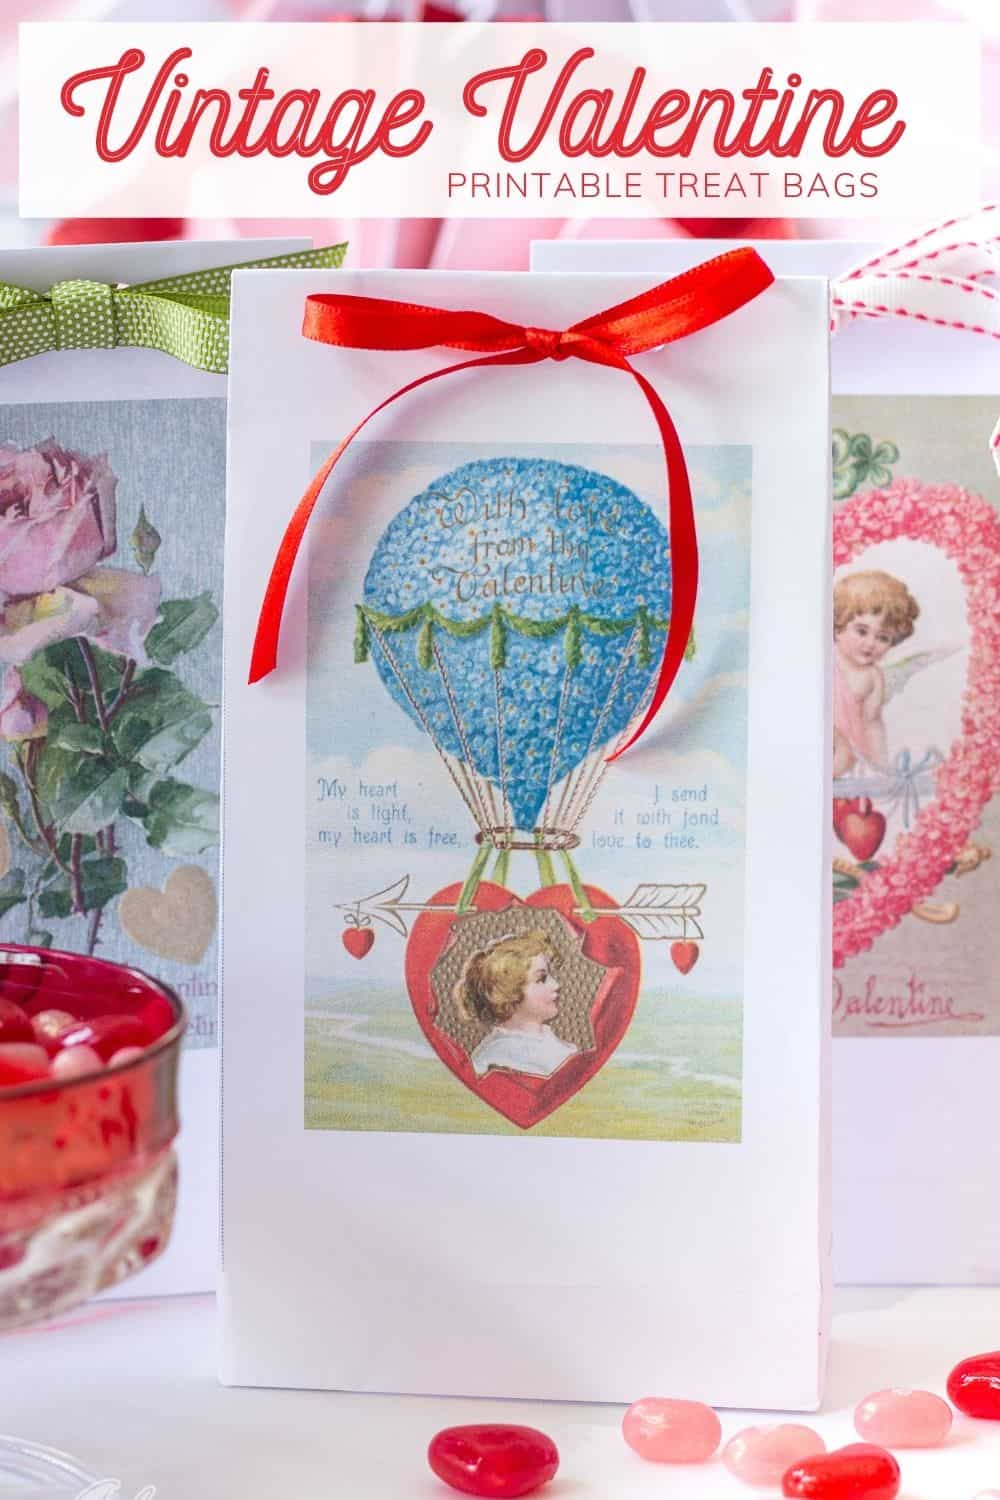 vintage valentine treat bag tied with ribbon